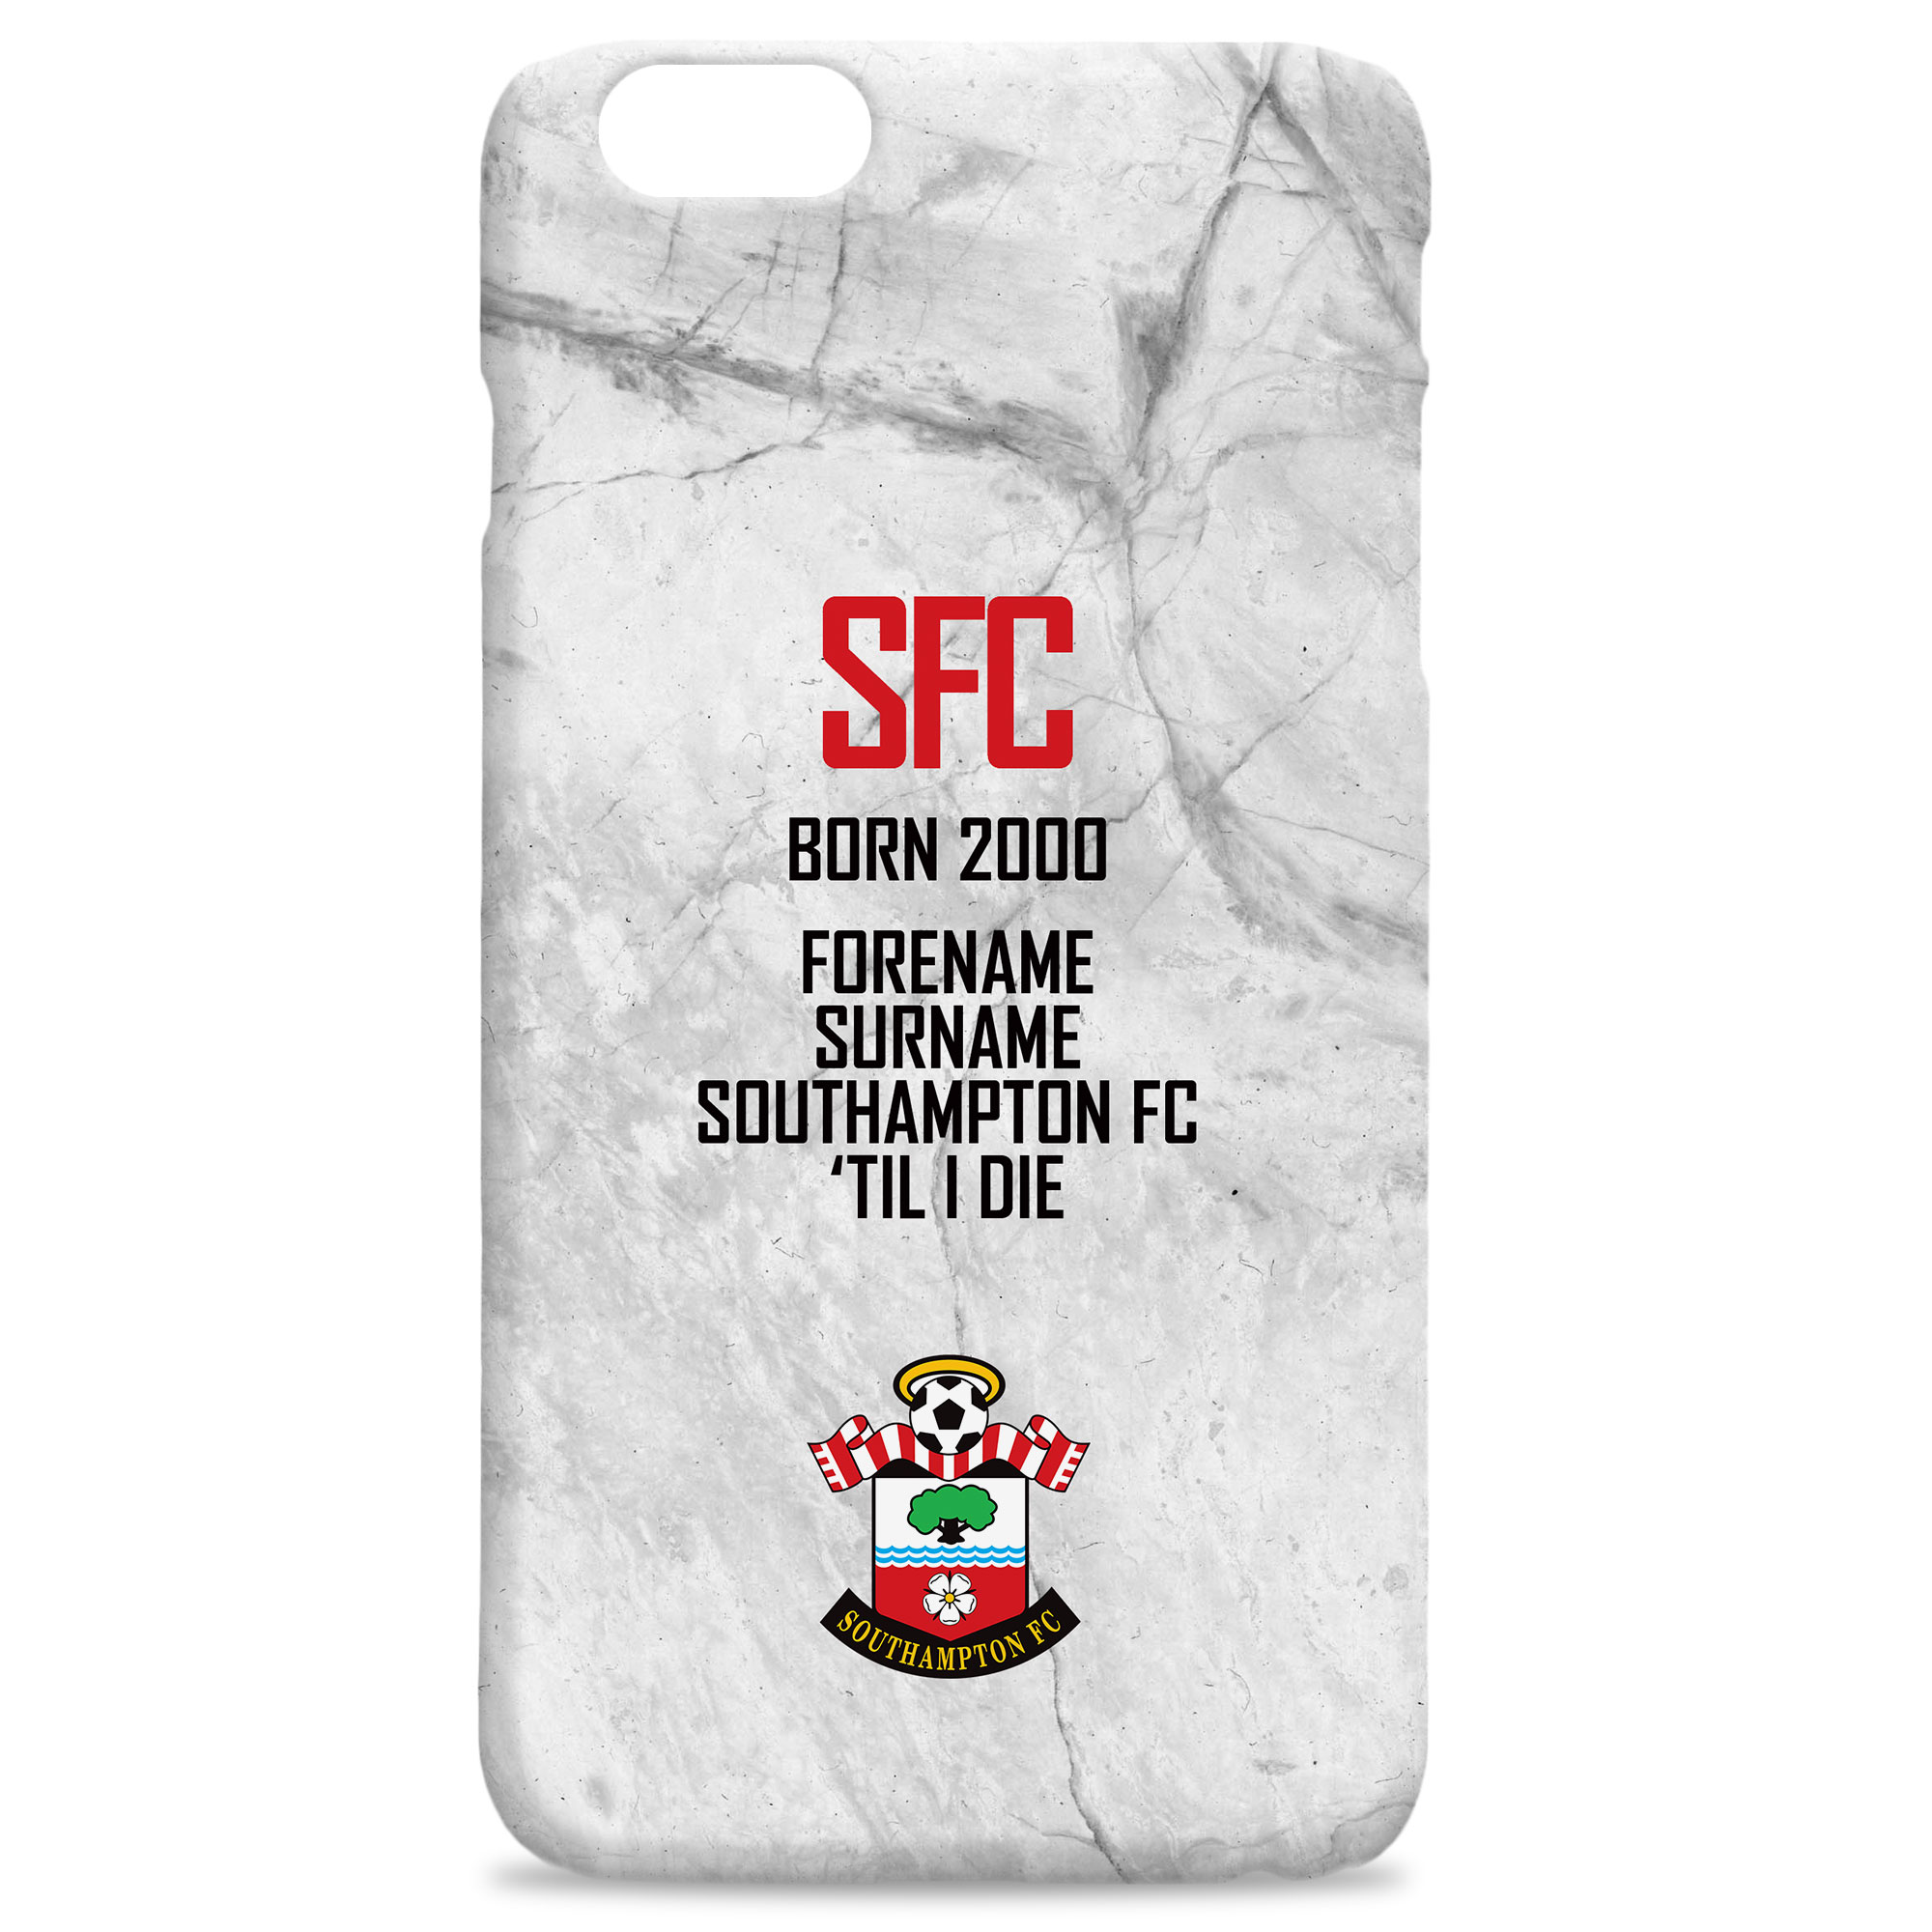 Southampton FC 'Til I Die Hard Back Phone Case